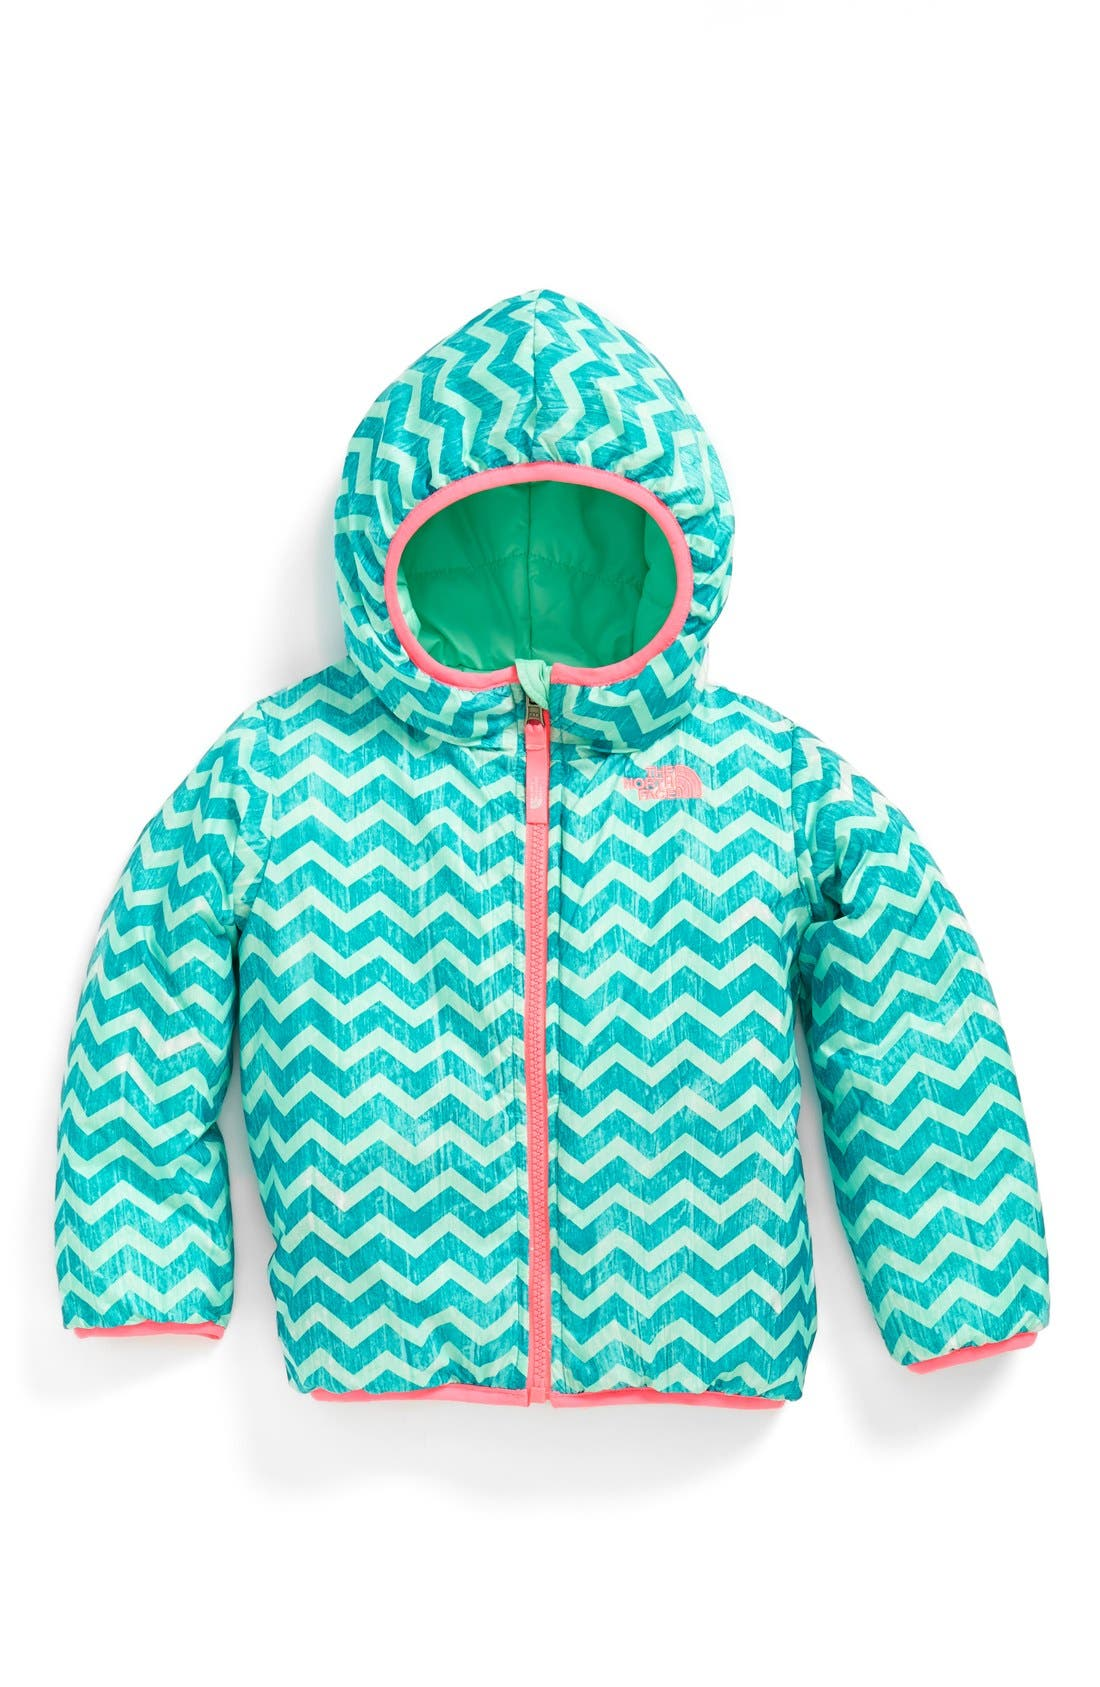 Main Image - The North Face 'Perrito' Reversible Water Repellent Hooded Jacket (Toddler Girls & Little Girls)